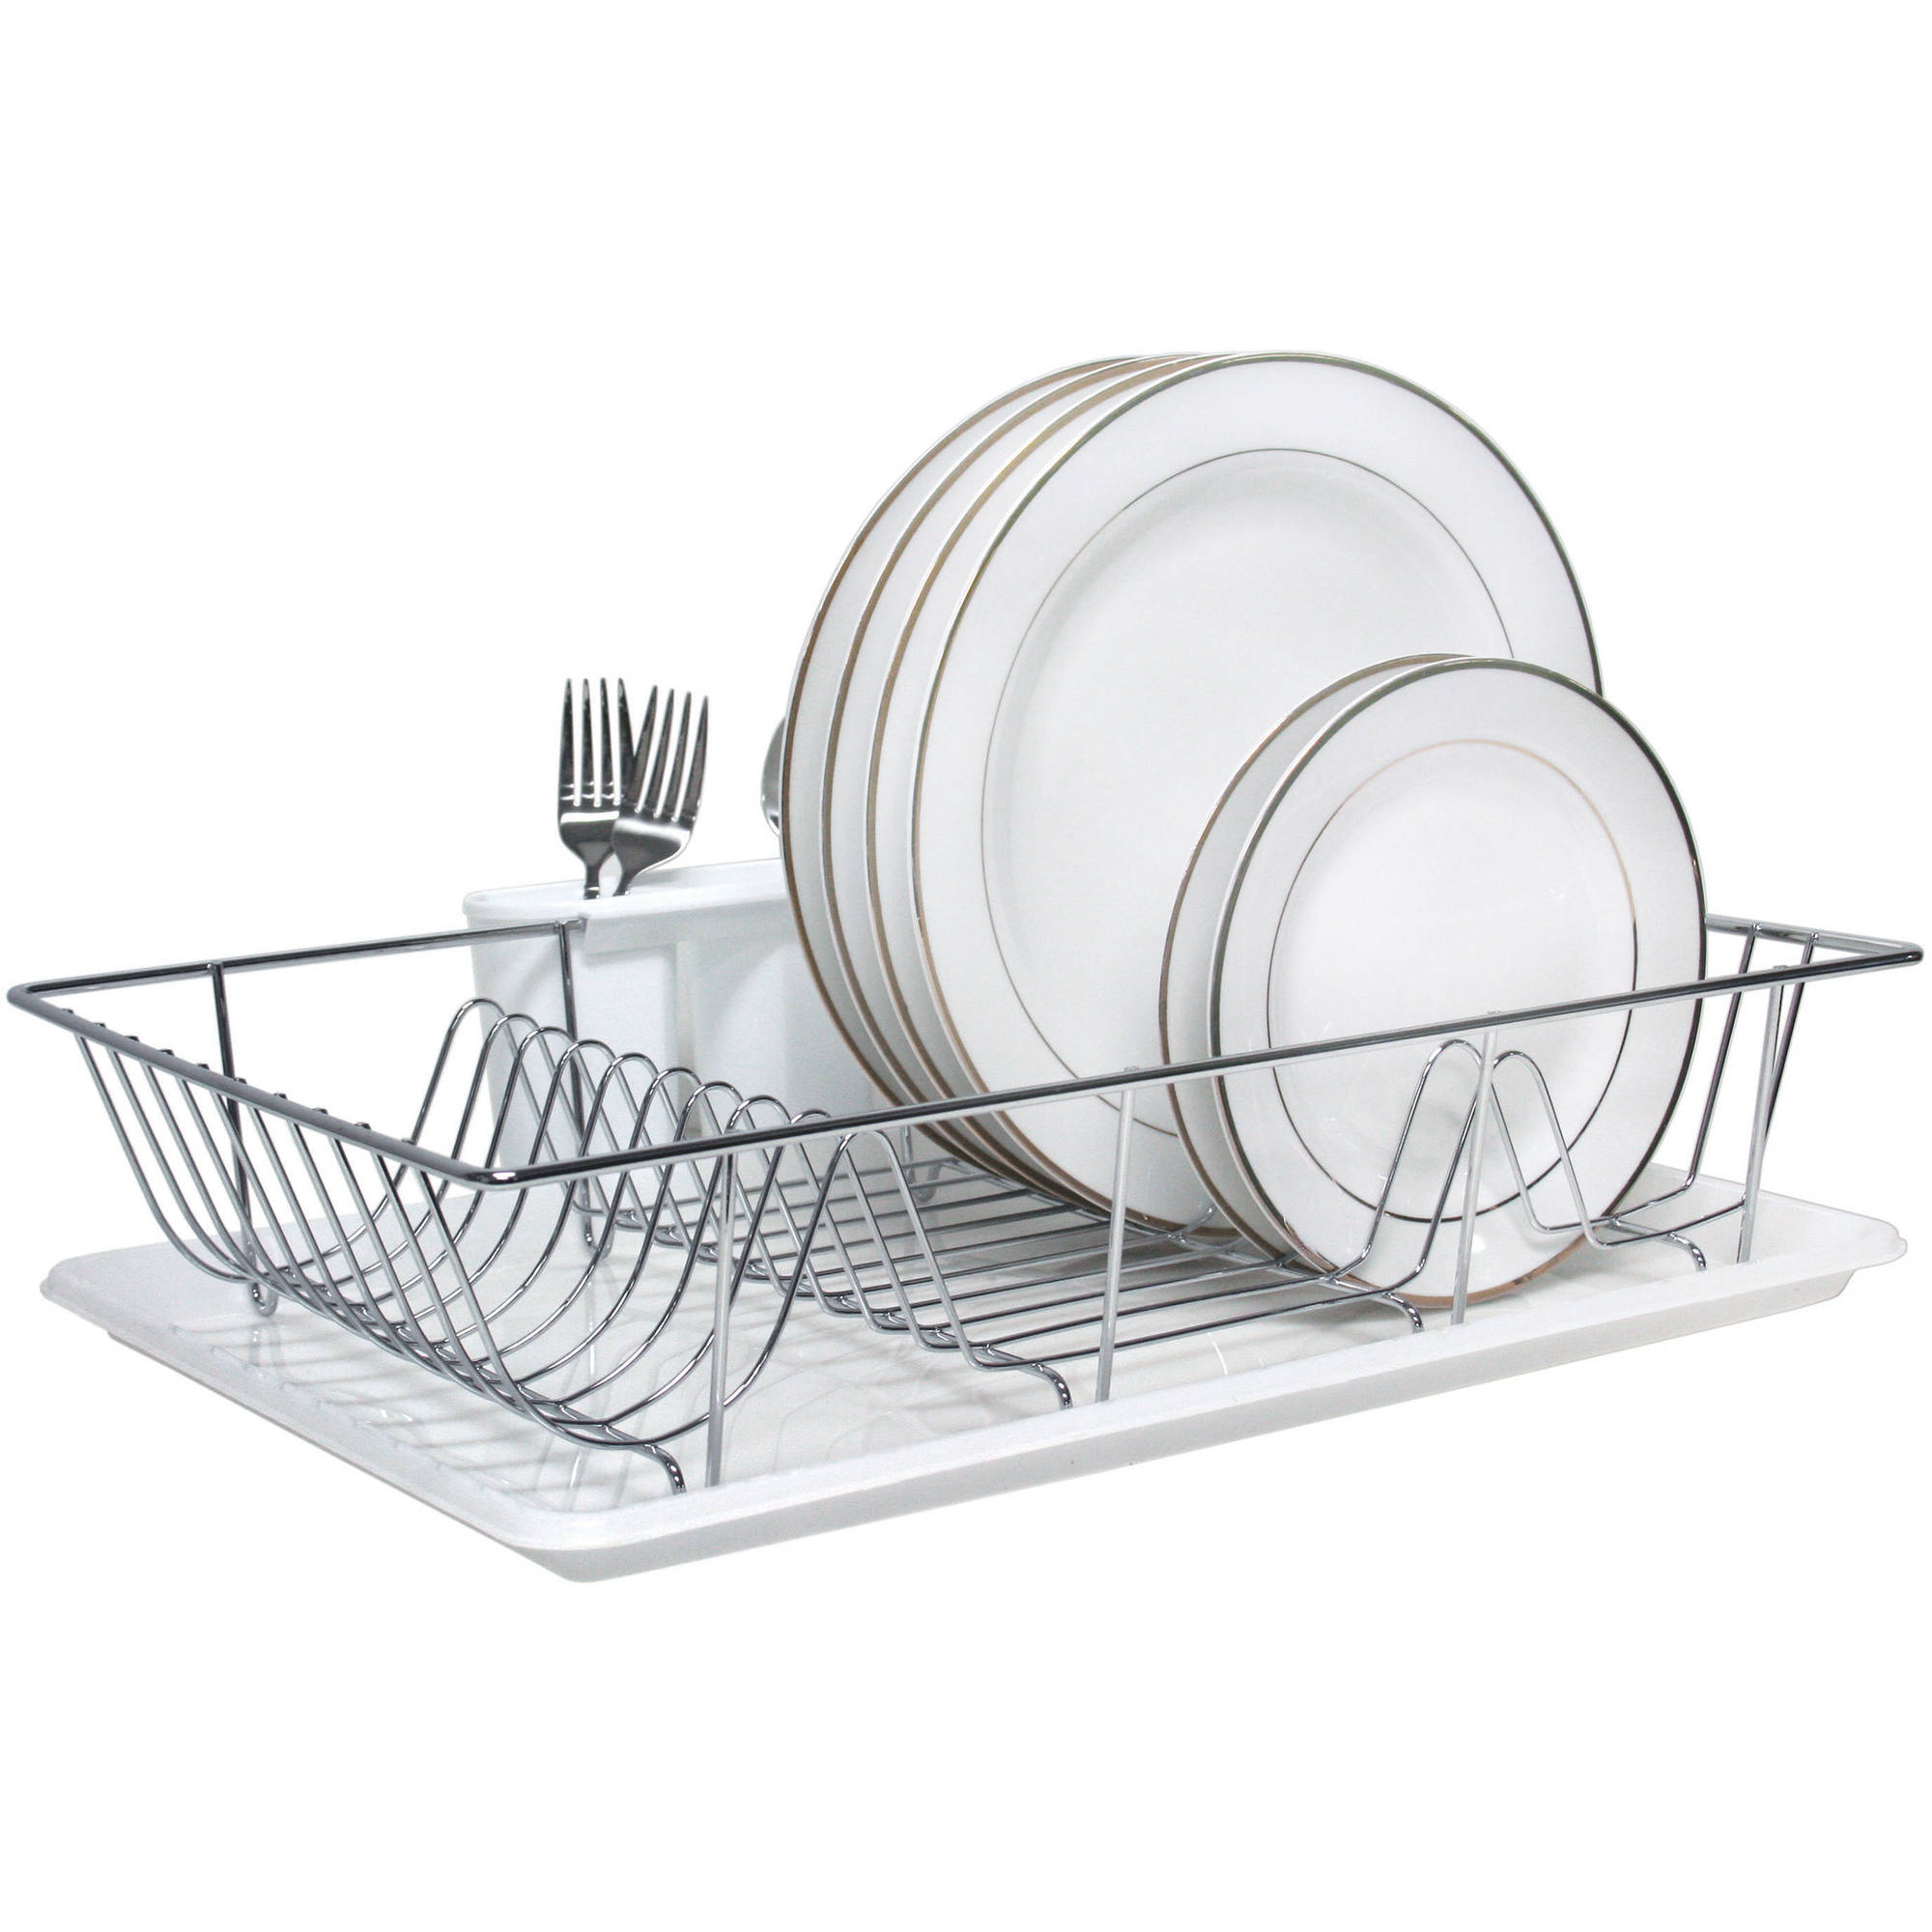 Kitchen Details, 3-Piece Chrome Dish Rack Set by Kennedy International, INC.